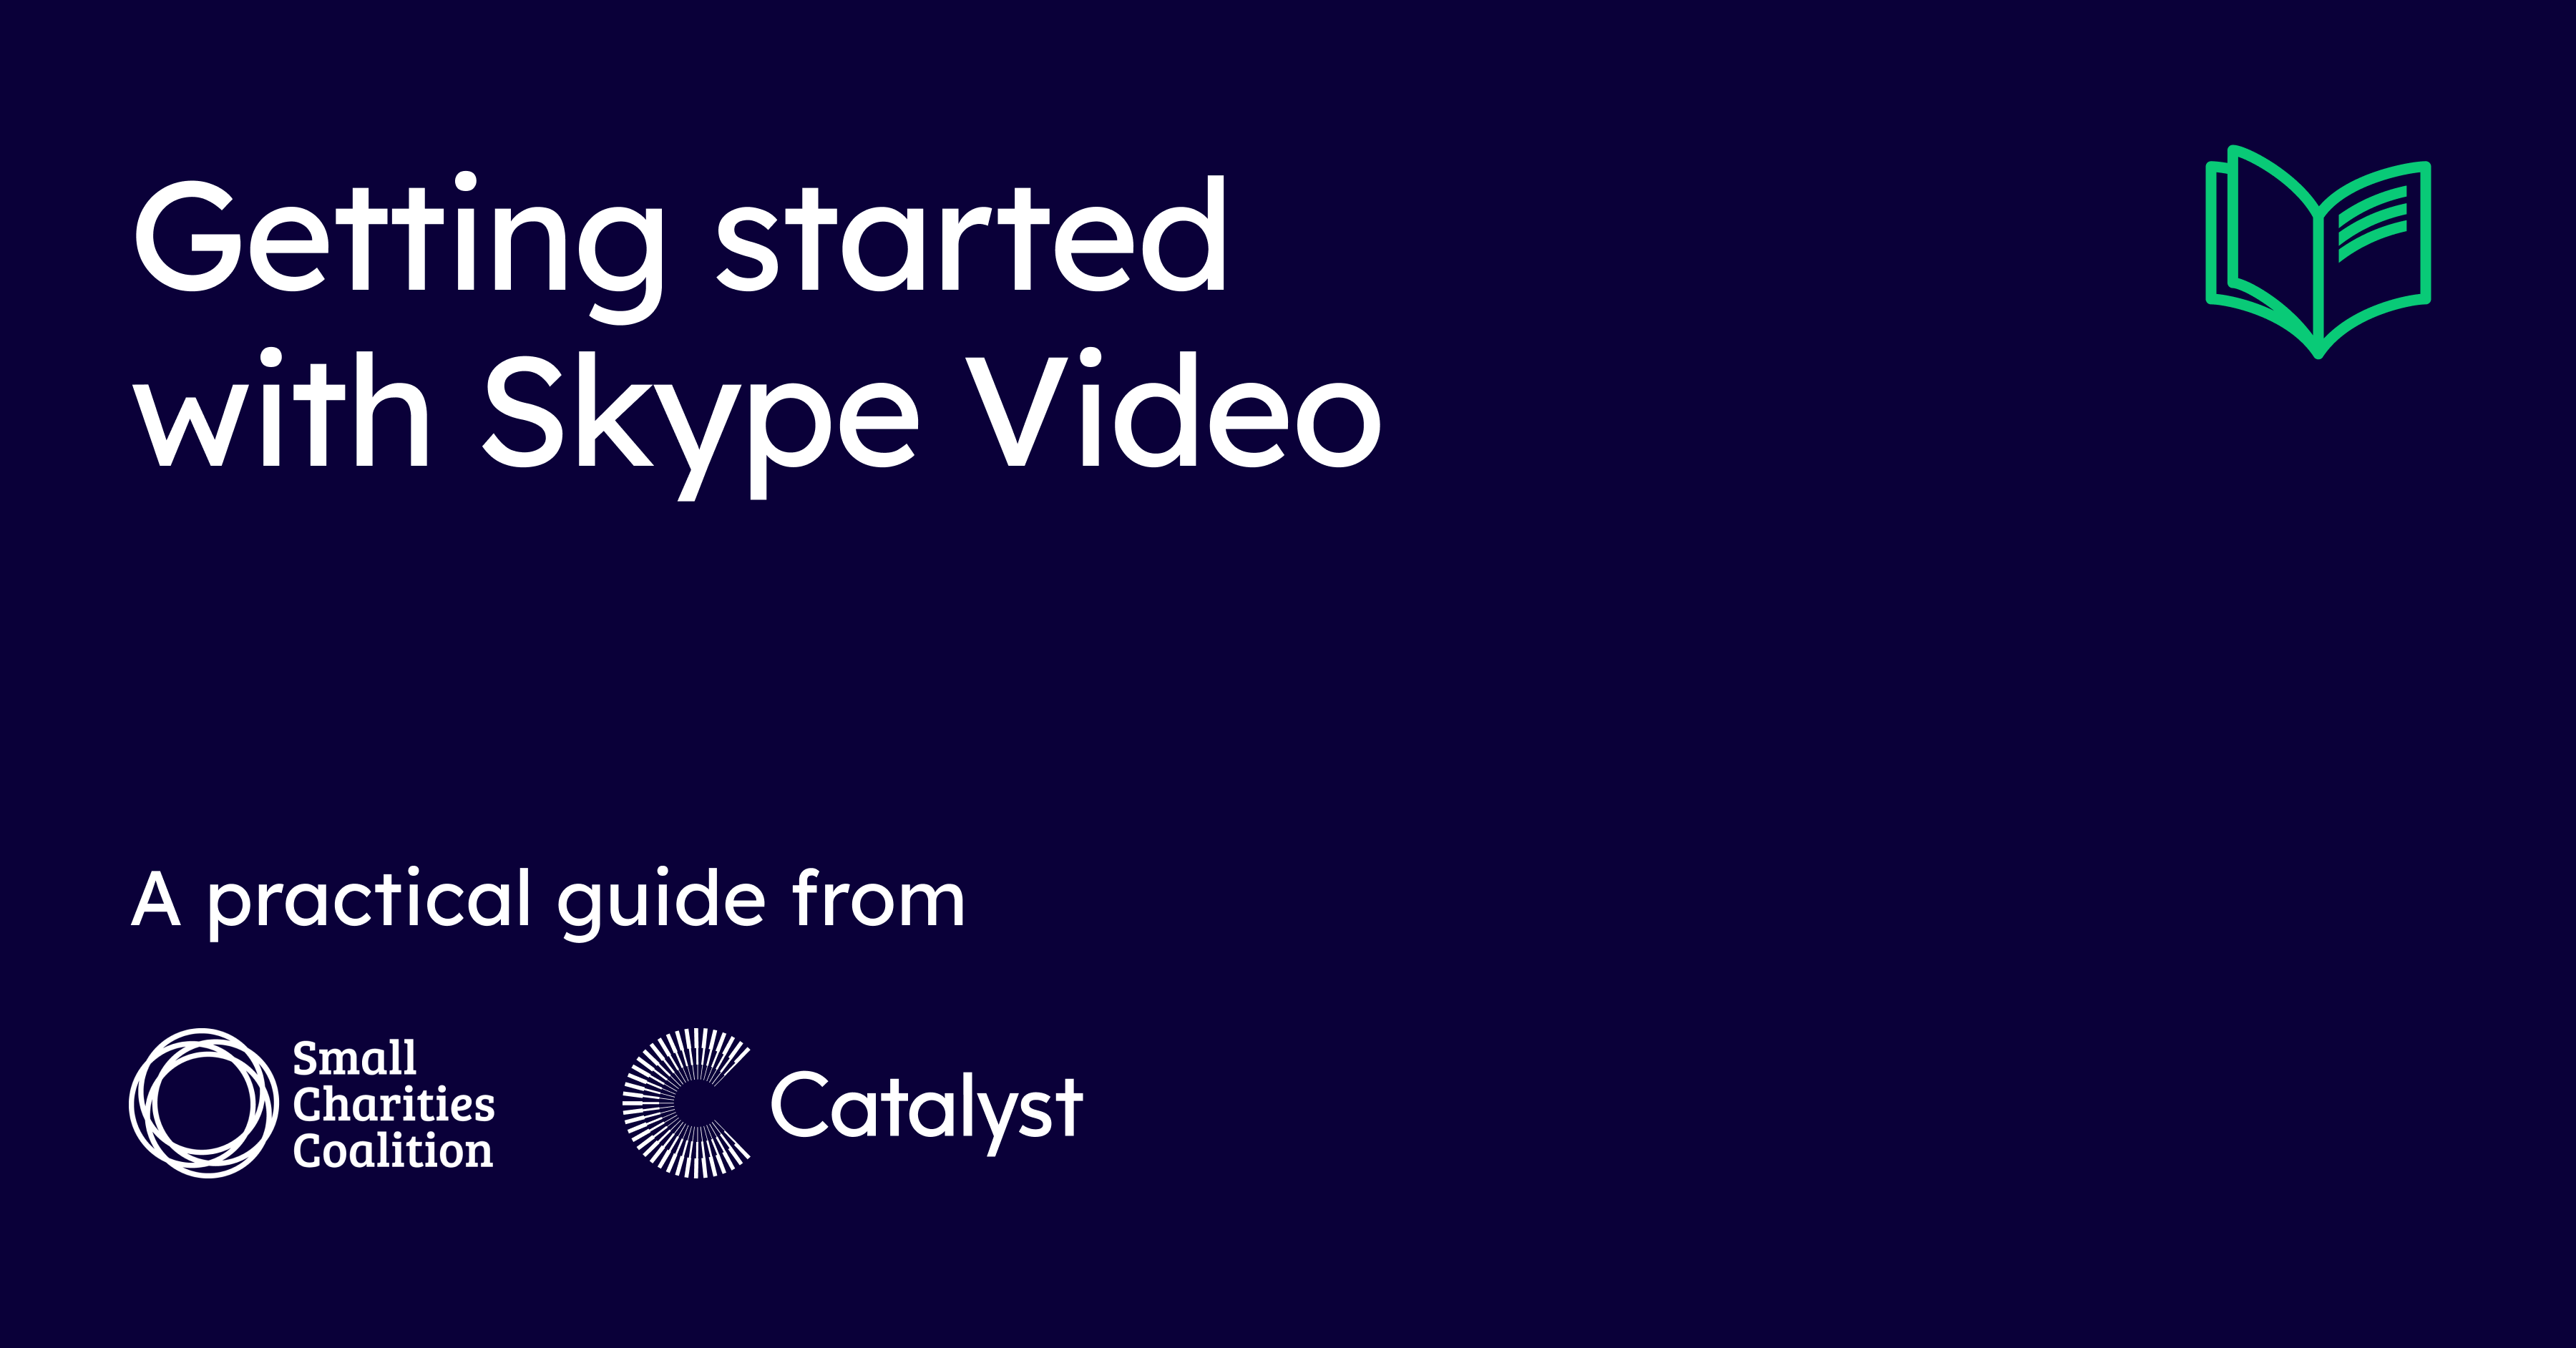 Getting started with Skype Video. A practical the Small Charities Coalition and Catalyst.